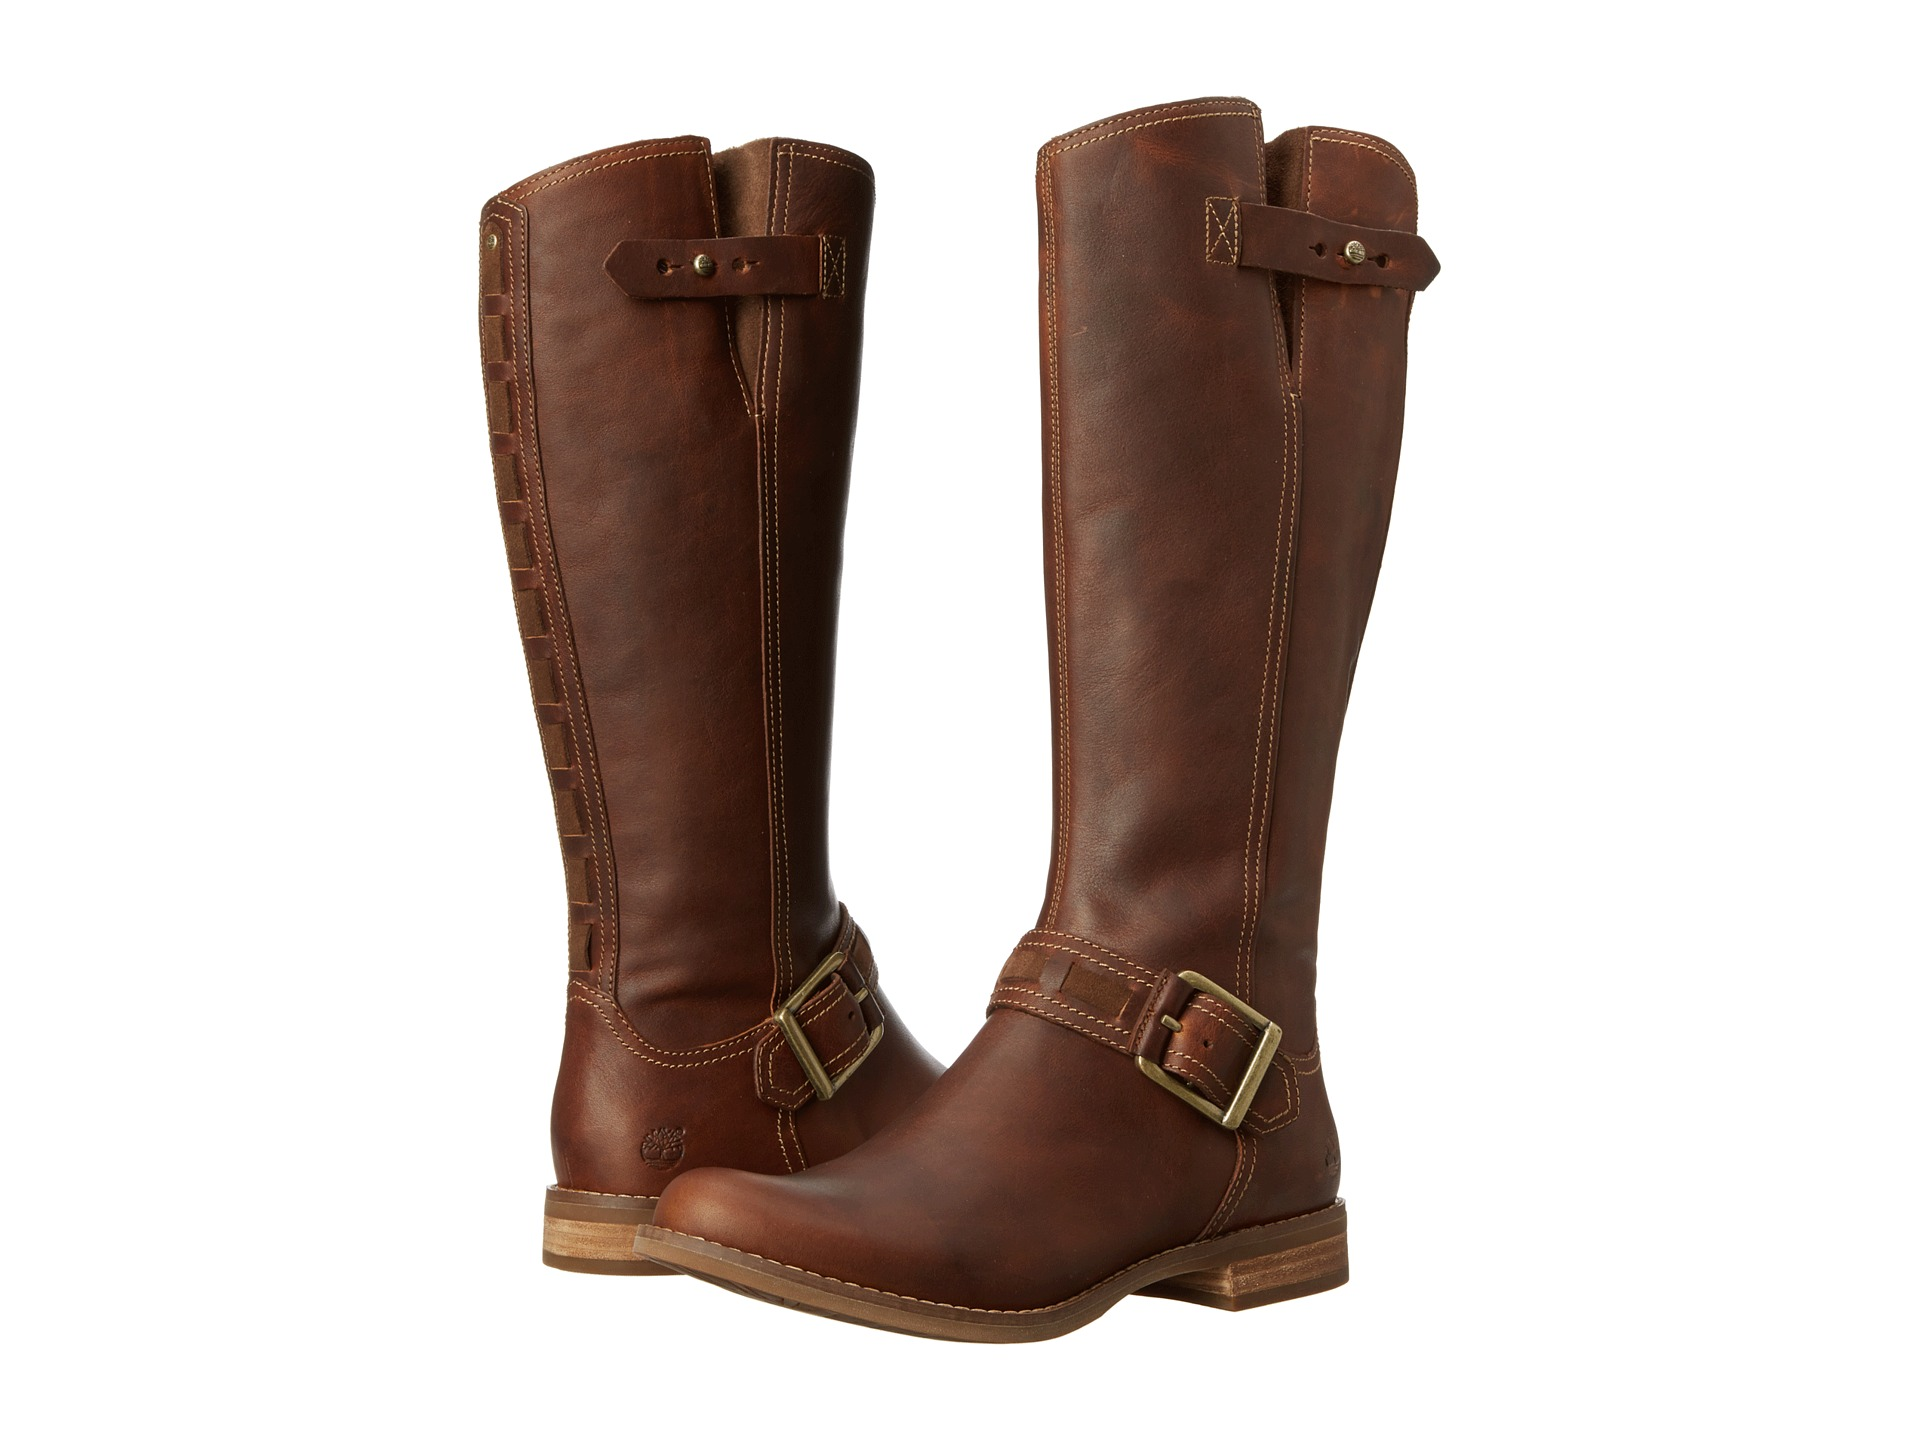 Narrow Size Boots | Shipped Free at Zappos